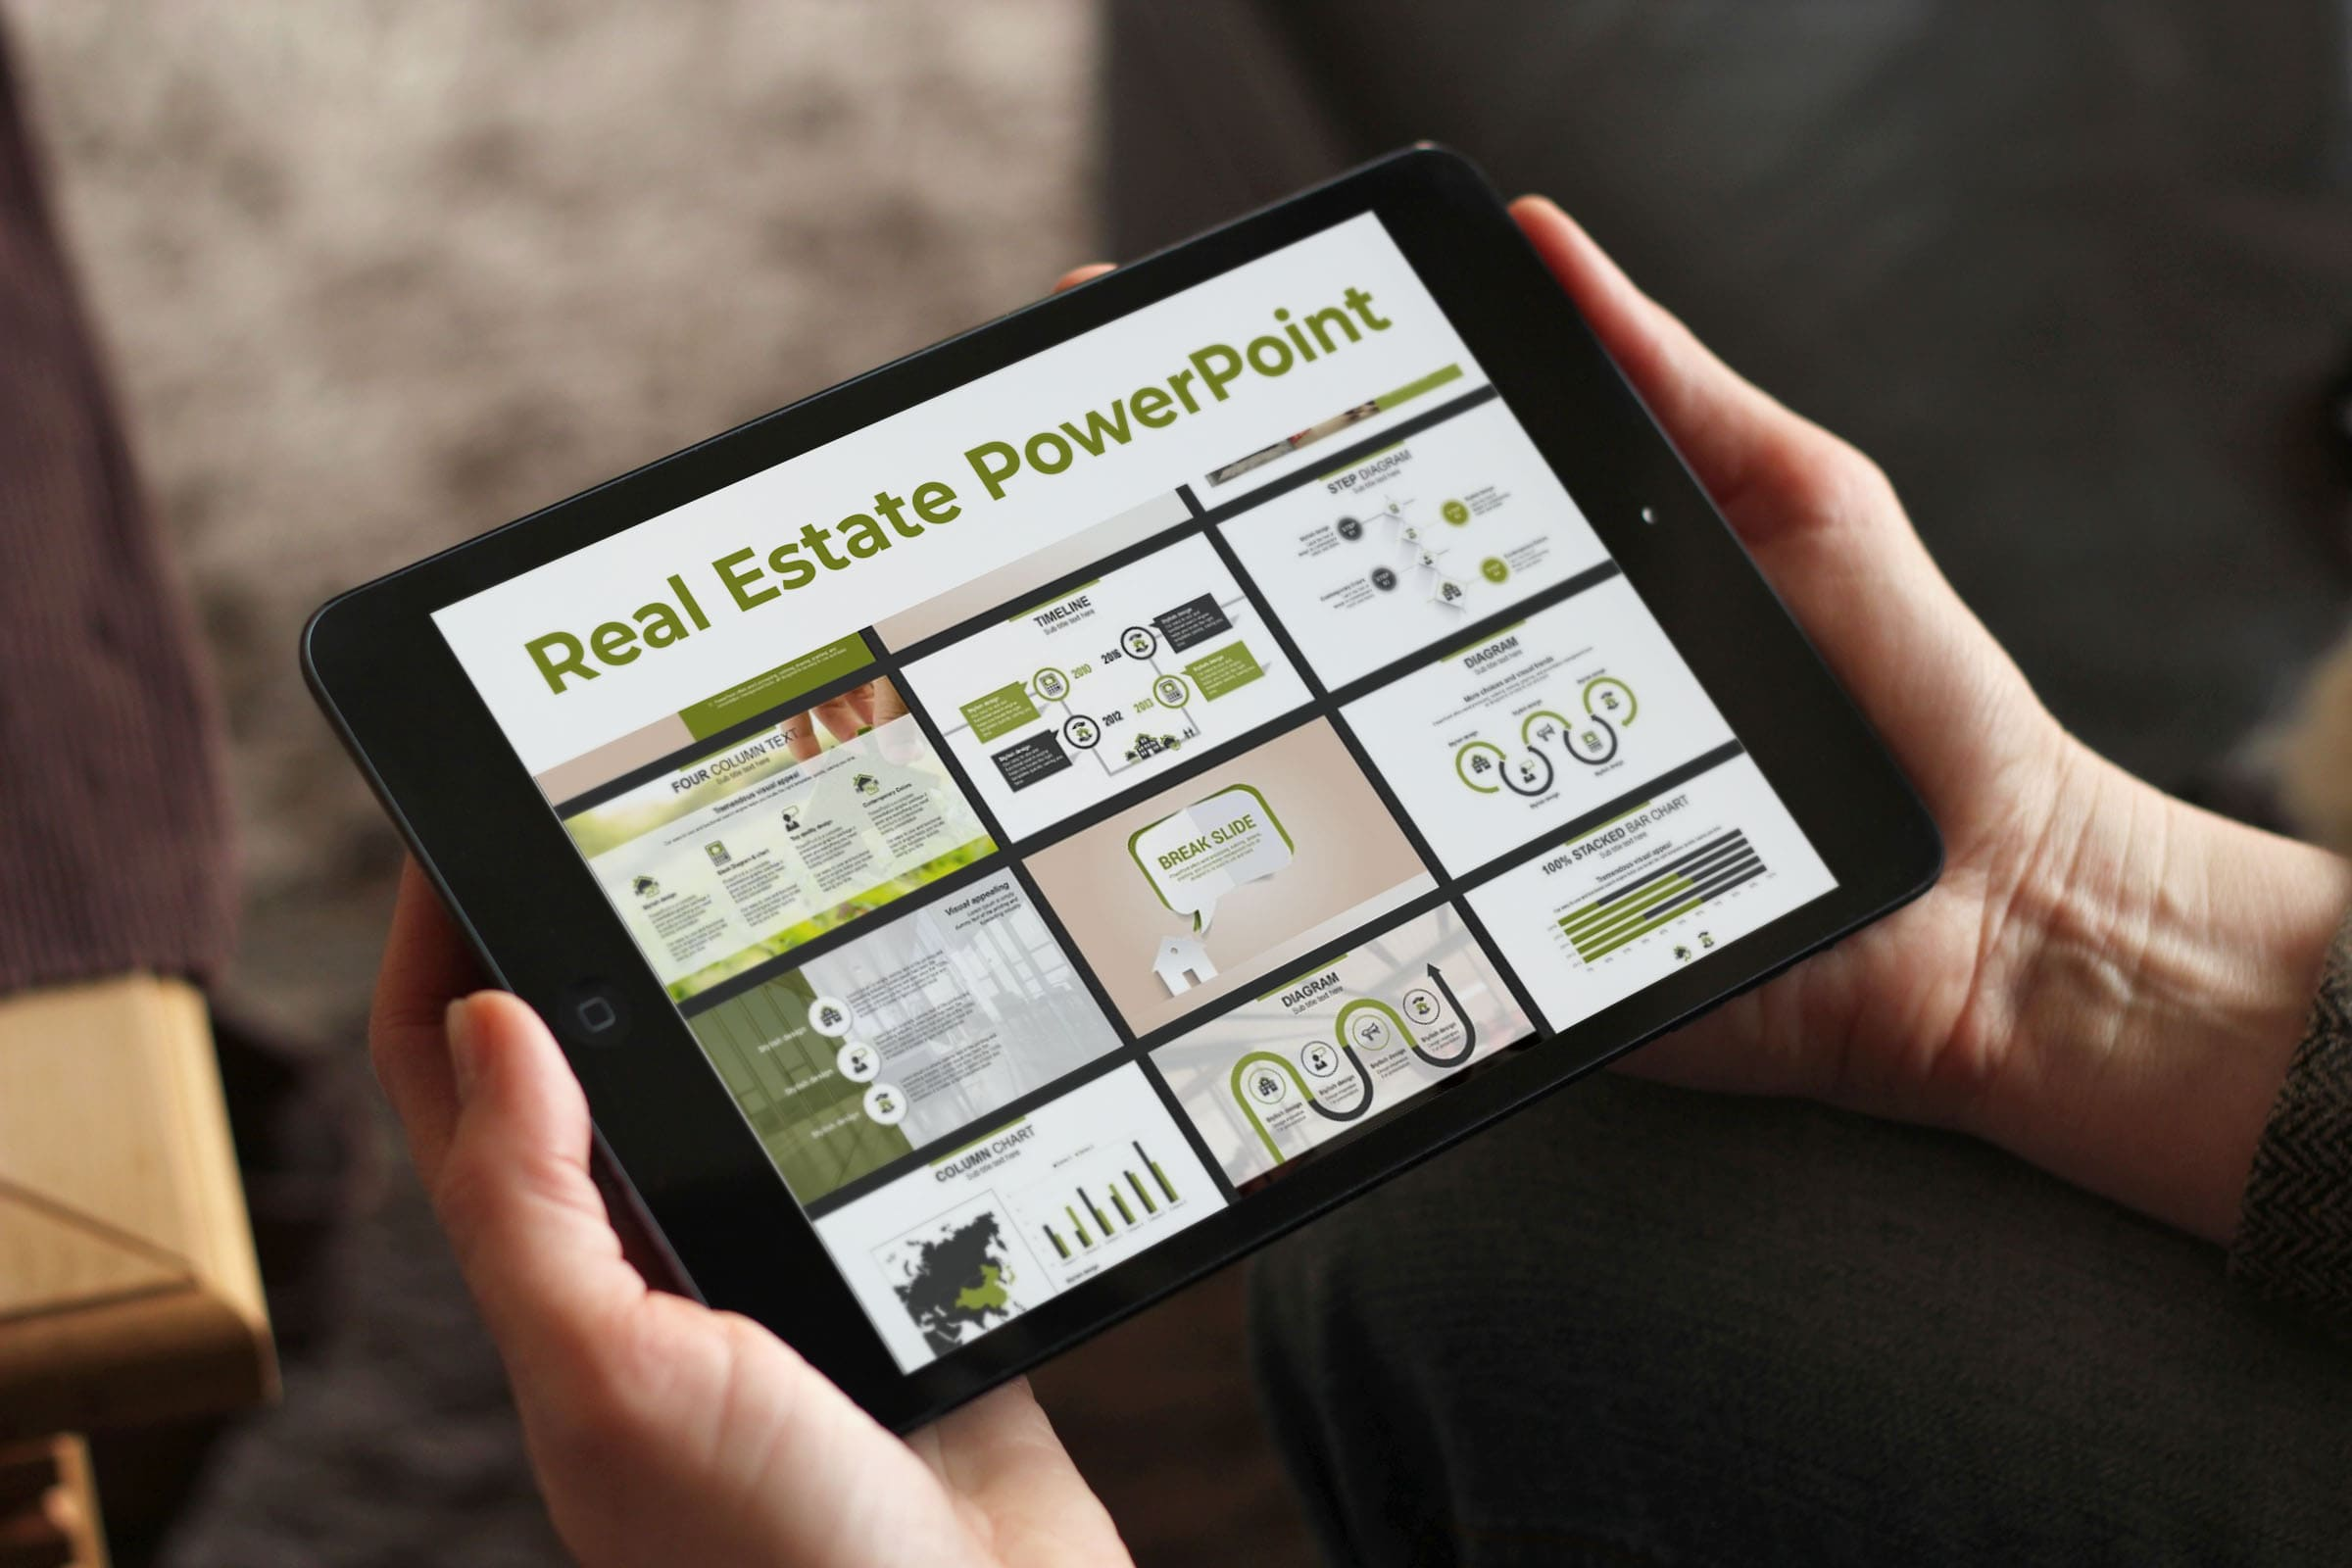 Real Estate PowerPoint Template by MasterBundles note preview mockup image.